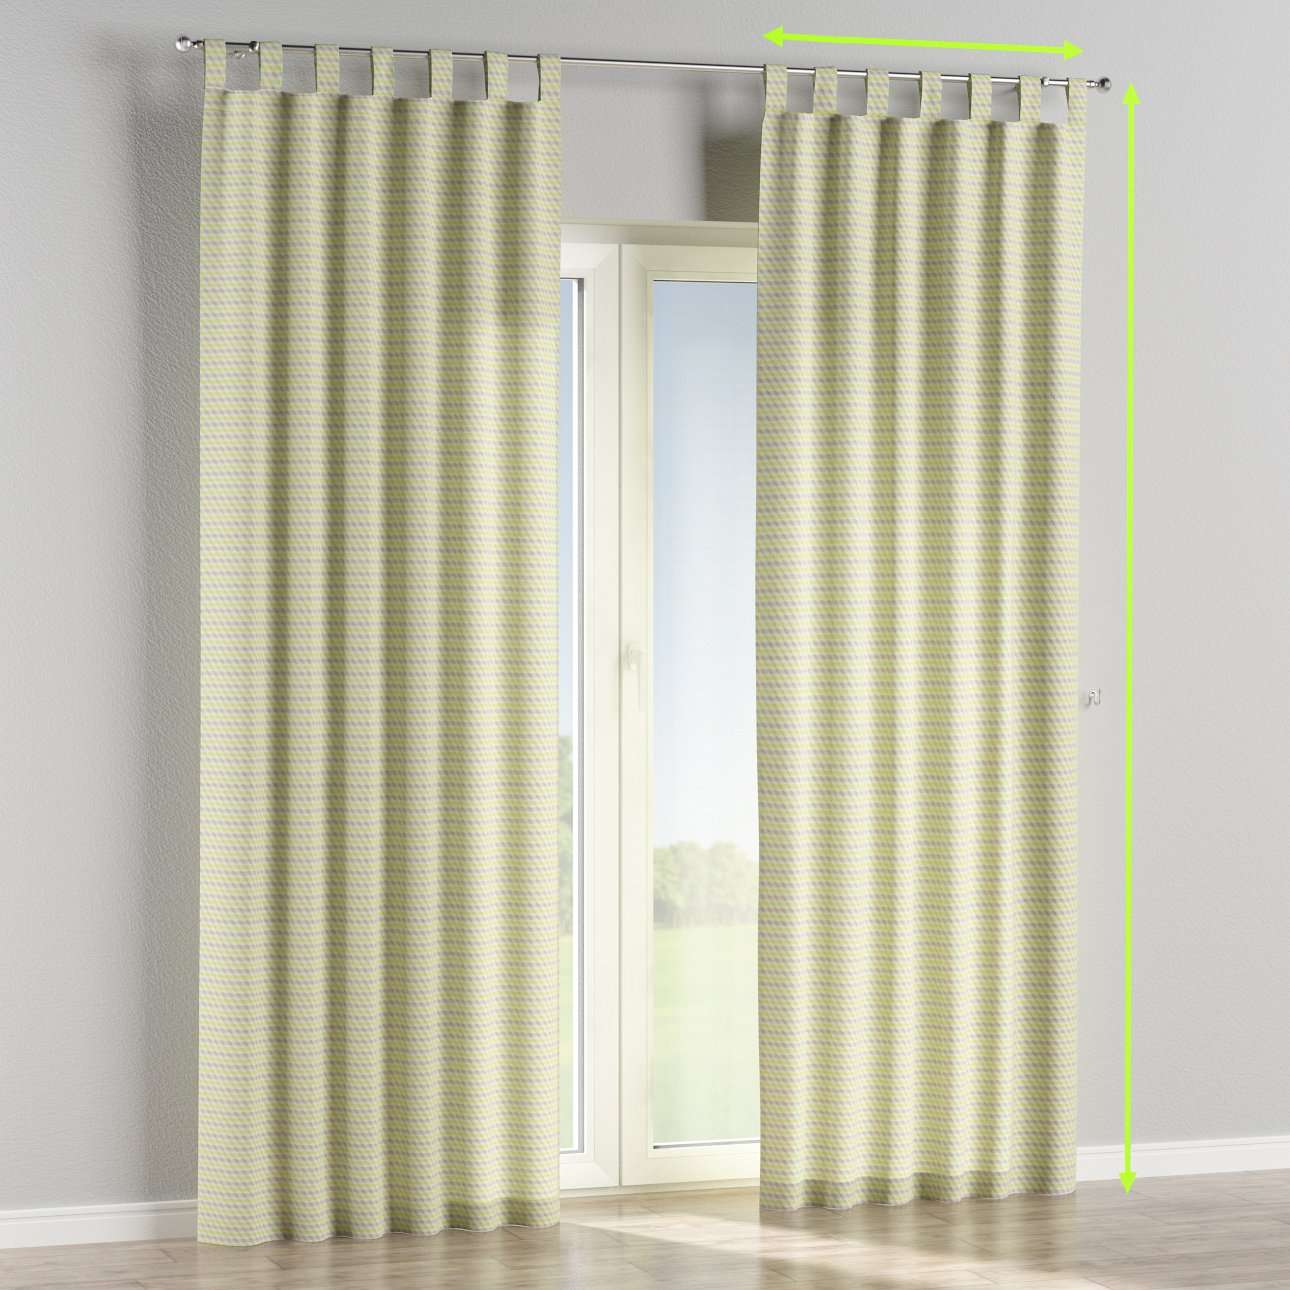 Tab top curtains in collection Rustica, fabric: 140-36